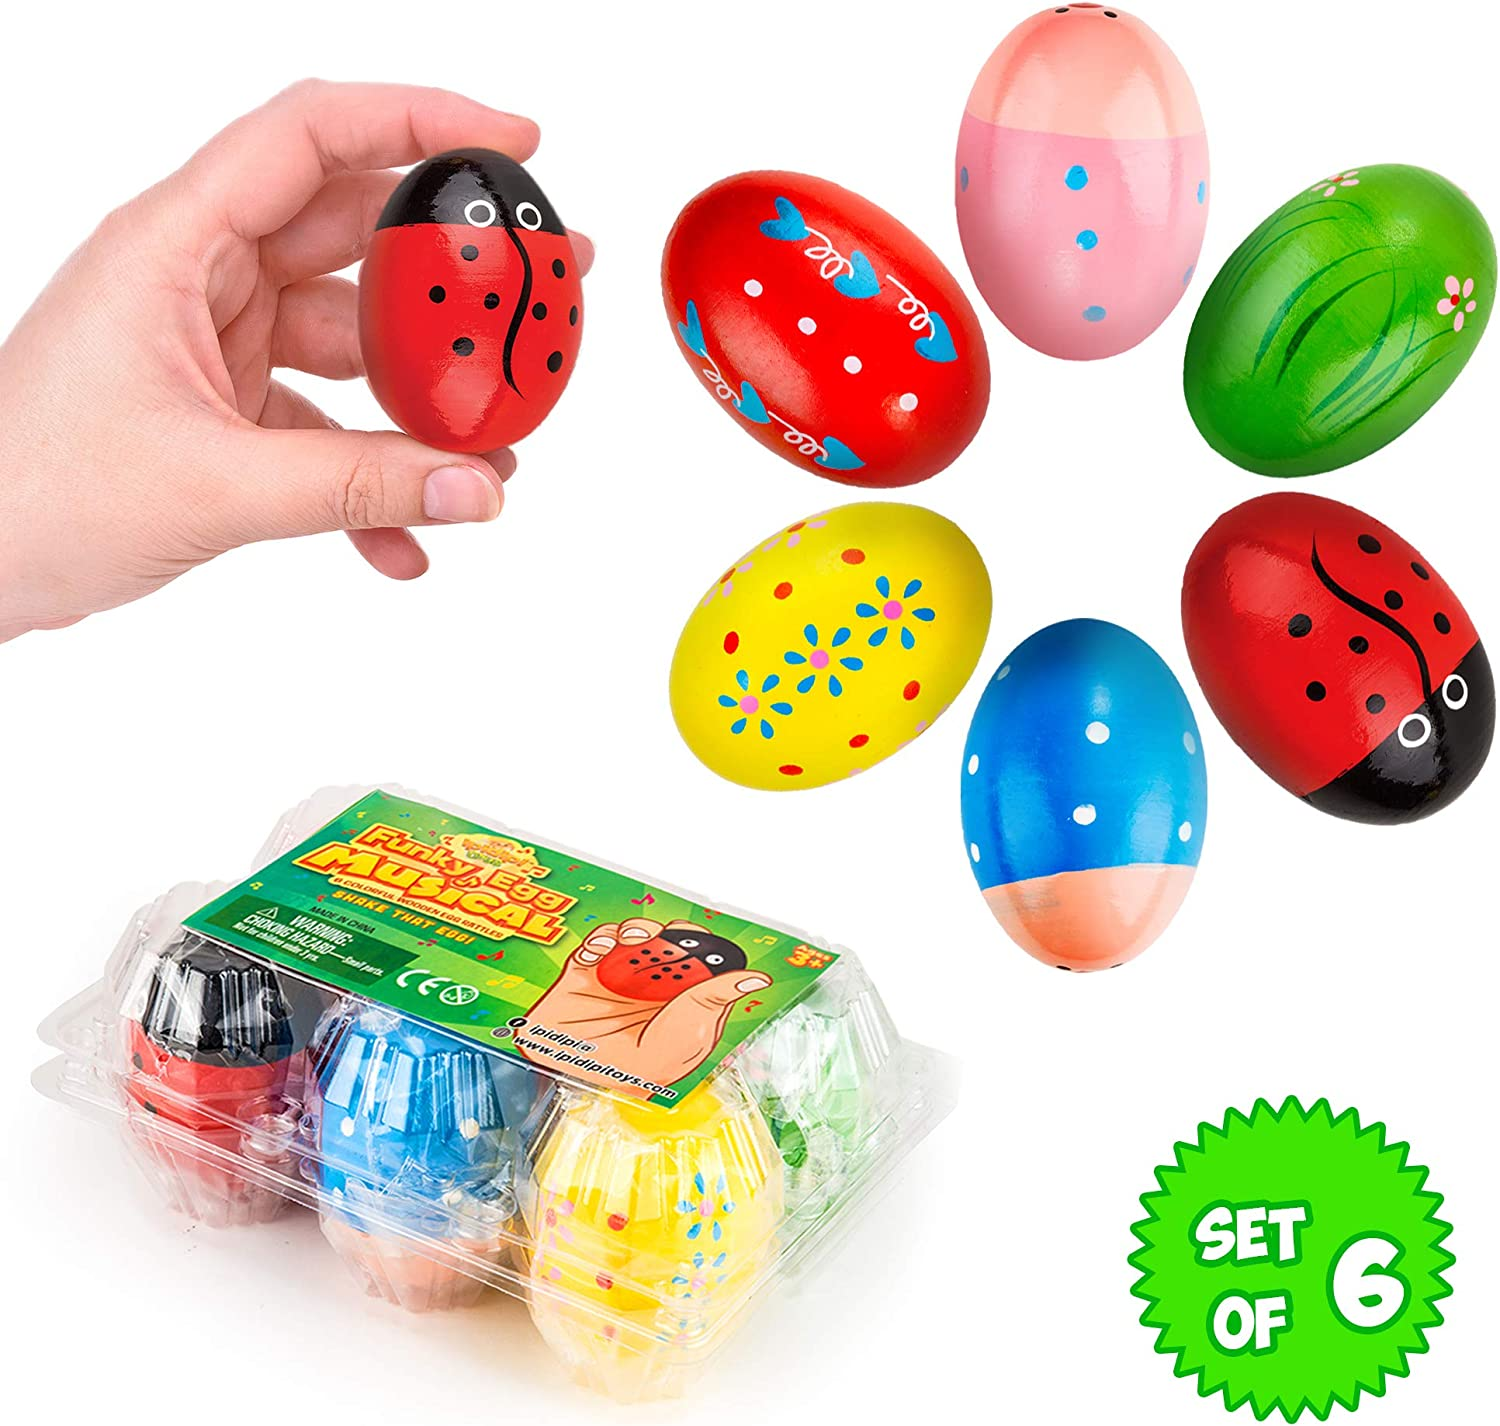 Funky Egg Shakers Maracas for Kids - 6 Pack - Natural, Wooden Musical Toy Percussion Instruments - Fun basket Stuffers - Colorful Sound Making Shakers - Assorted Easter Designs for Girls, Boys